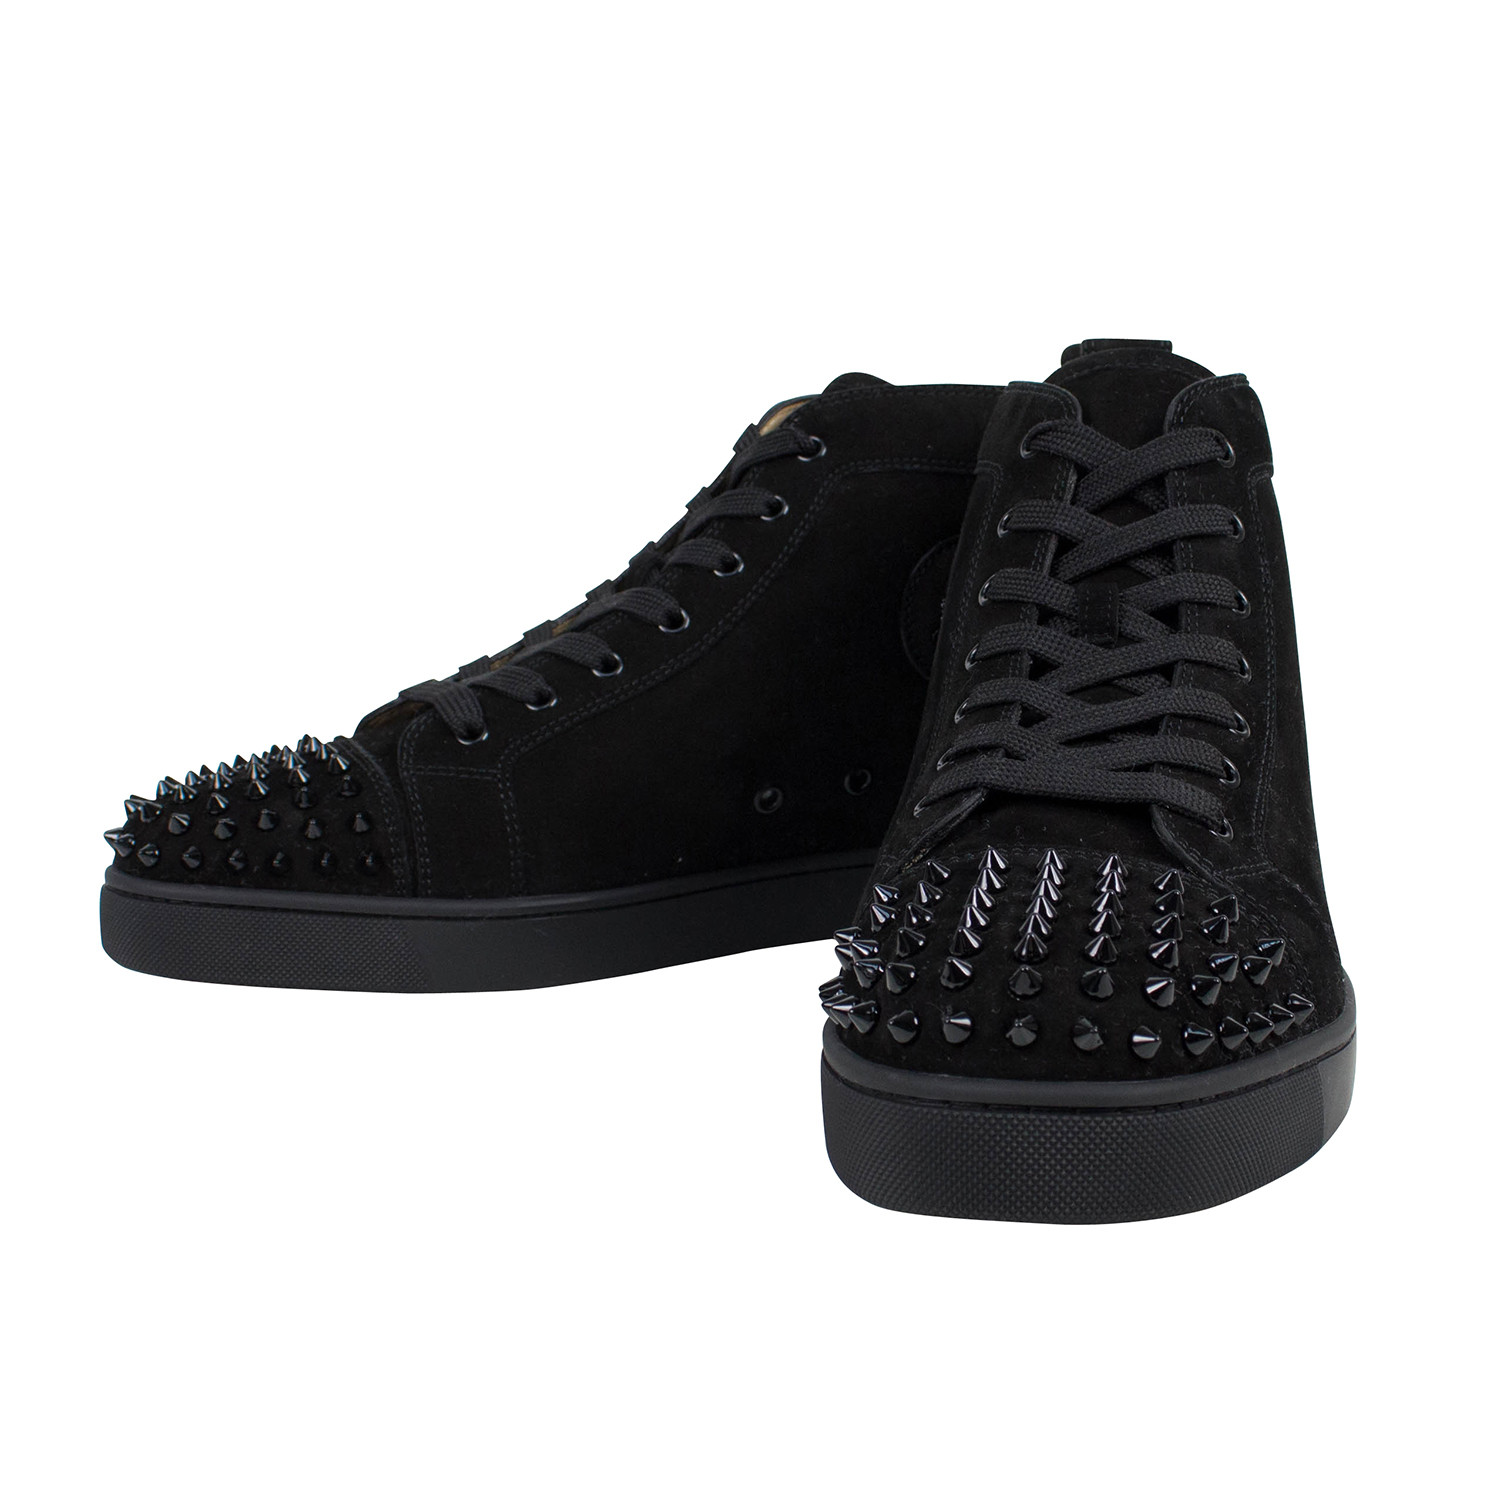 size 40 74965 52aba Louis Suede Leather Hi-Top Spike Sneakers // Black (US: 13 ...